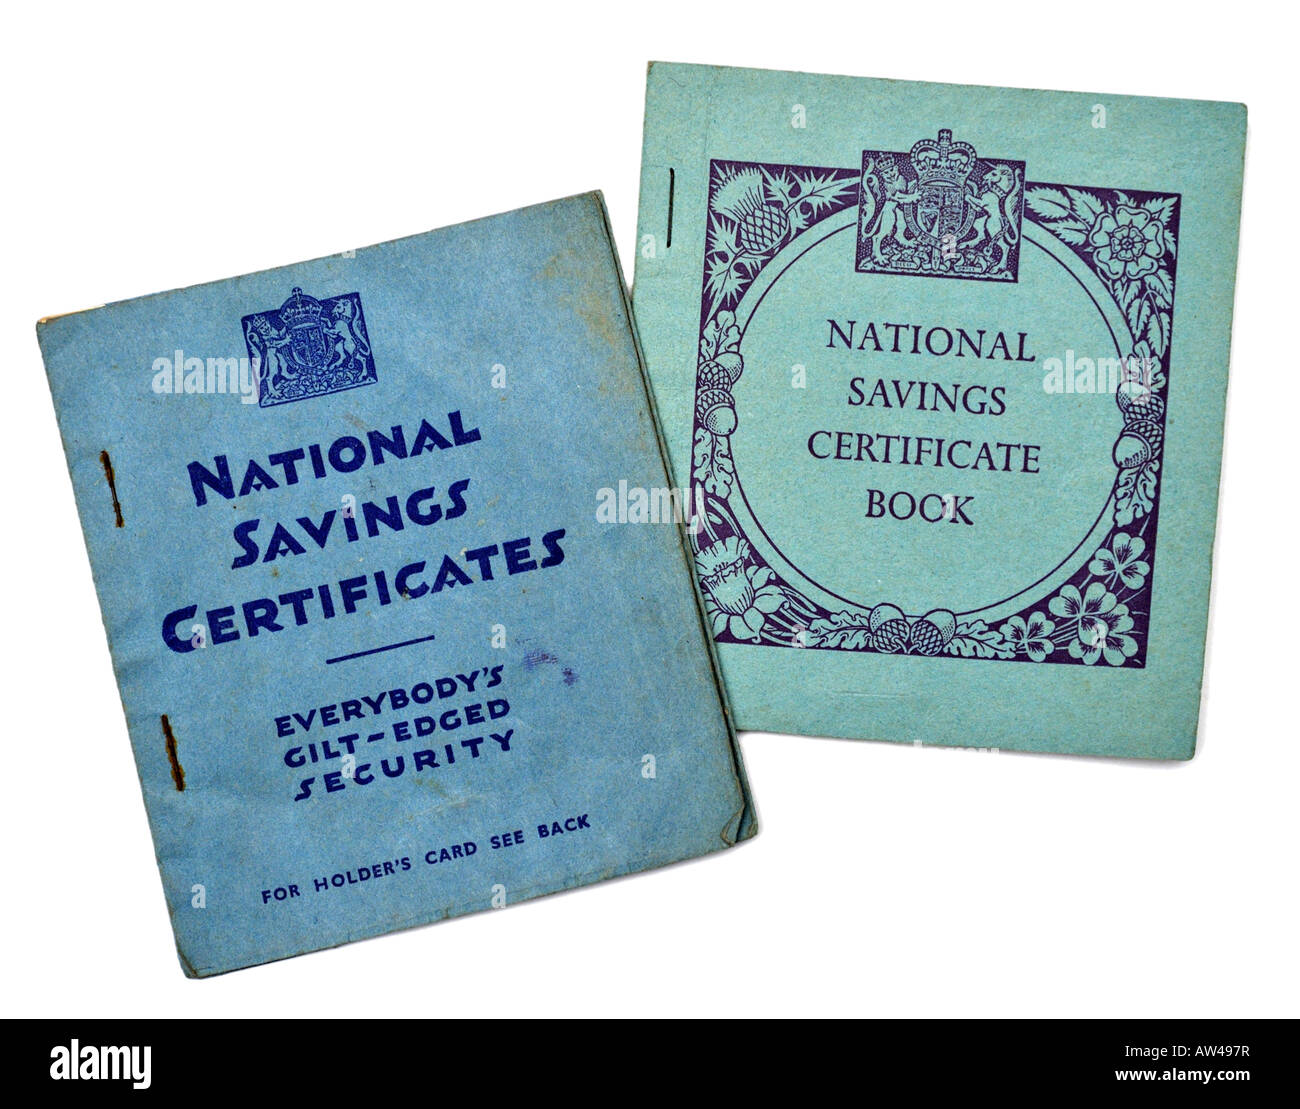 National savings certificate books 1940s 1950s editorial use only national savings certificate books 1940s 1950s editorial use only 1betcityfo Choice Image